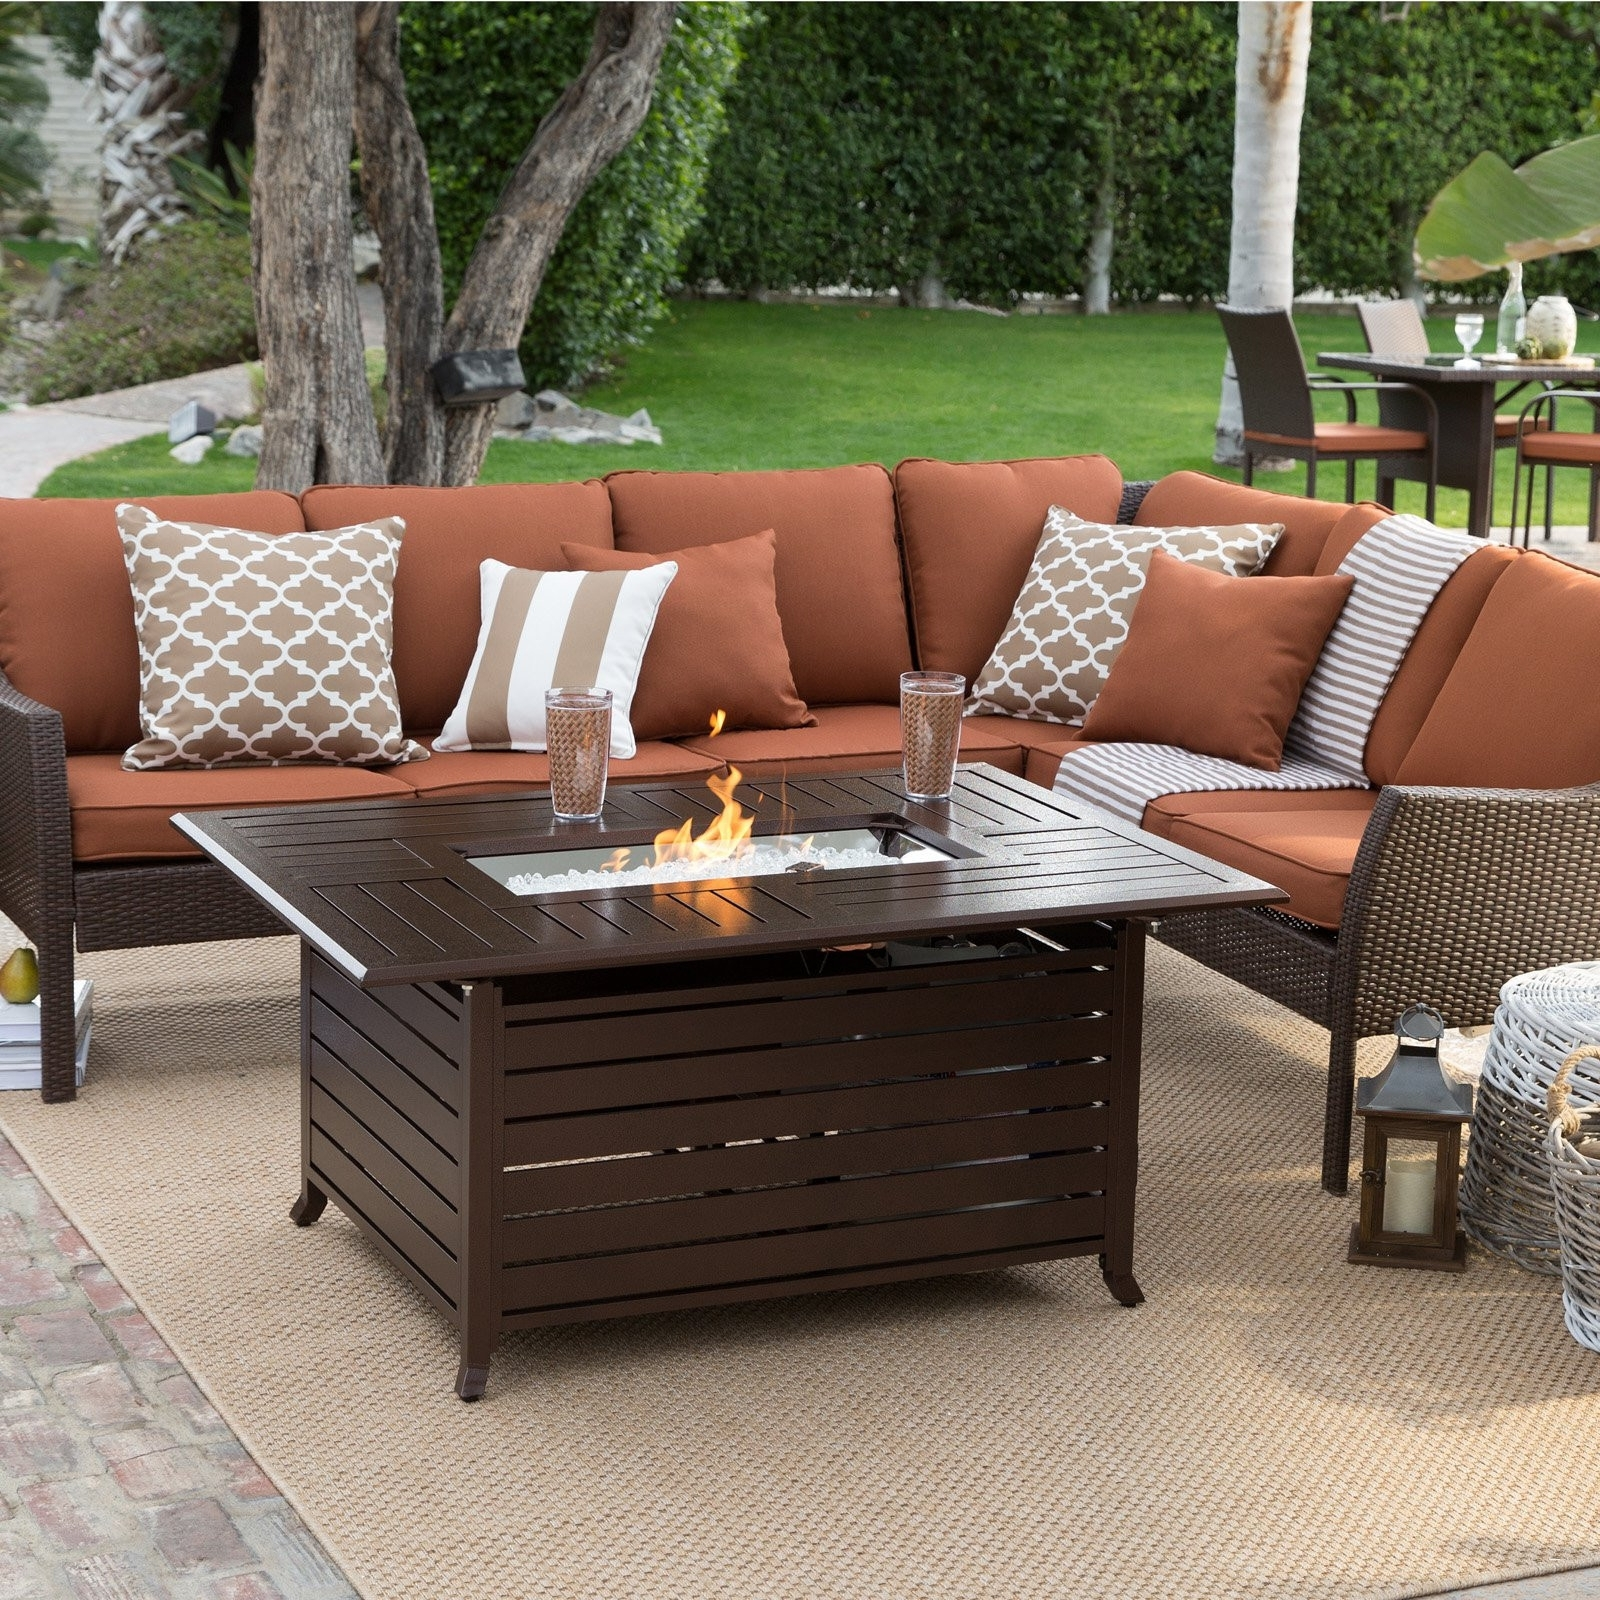 Patio Conversation Sets With Fire Pit Table Within Preferred 30 Luxury Patio Set With Fire Pit Table Design (View 17 of 20)